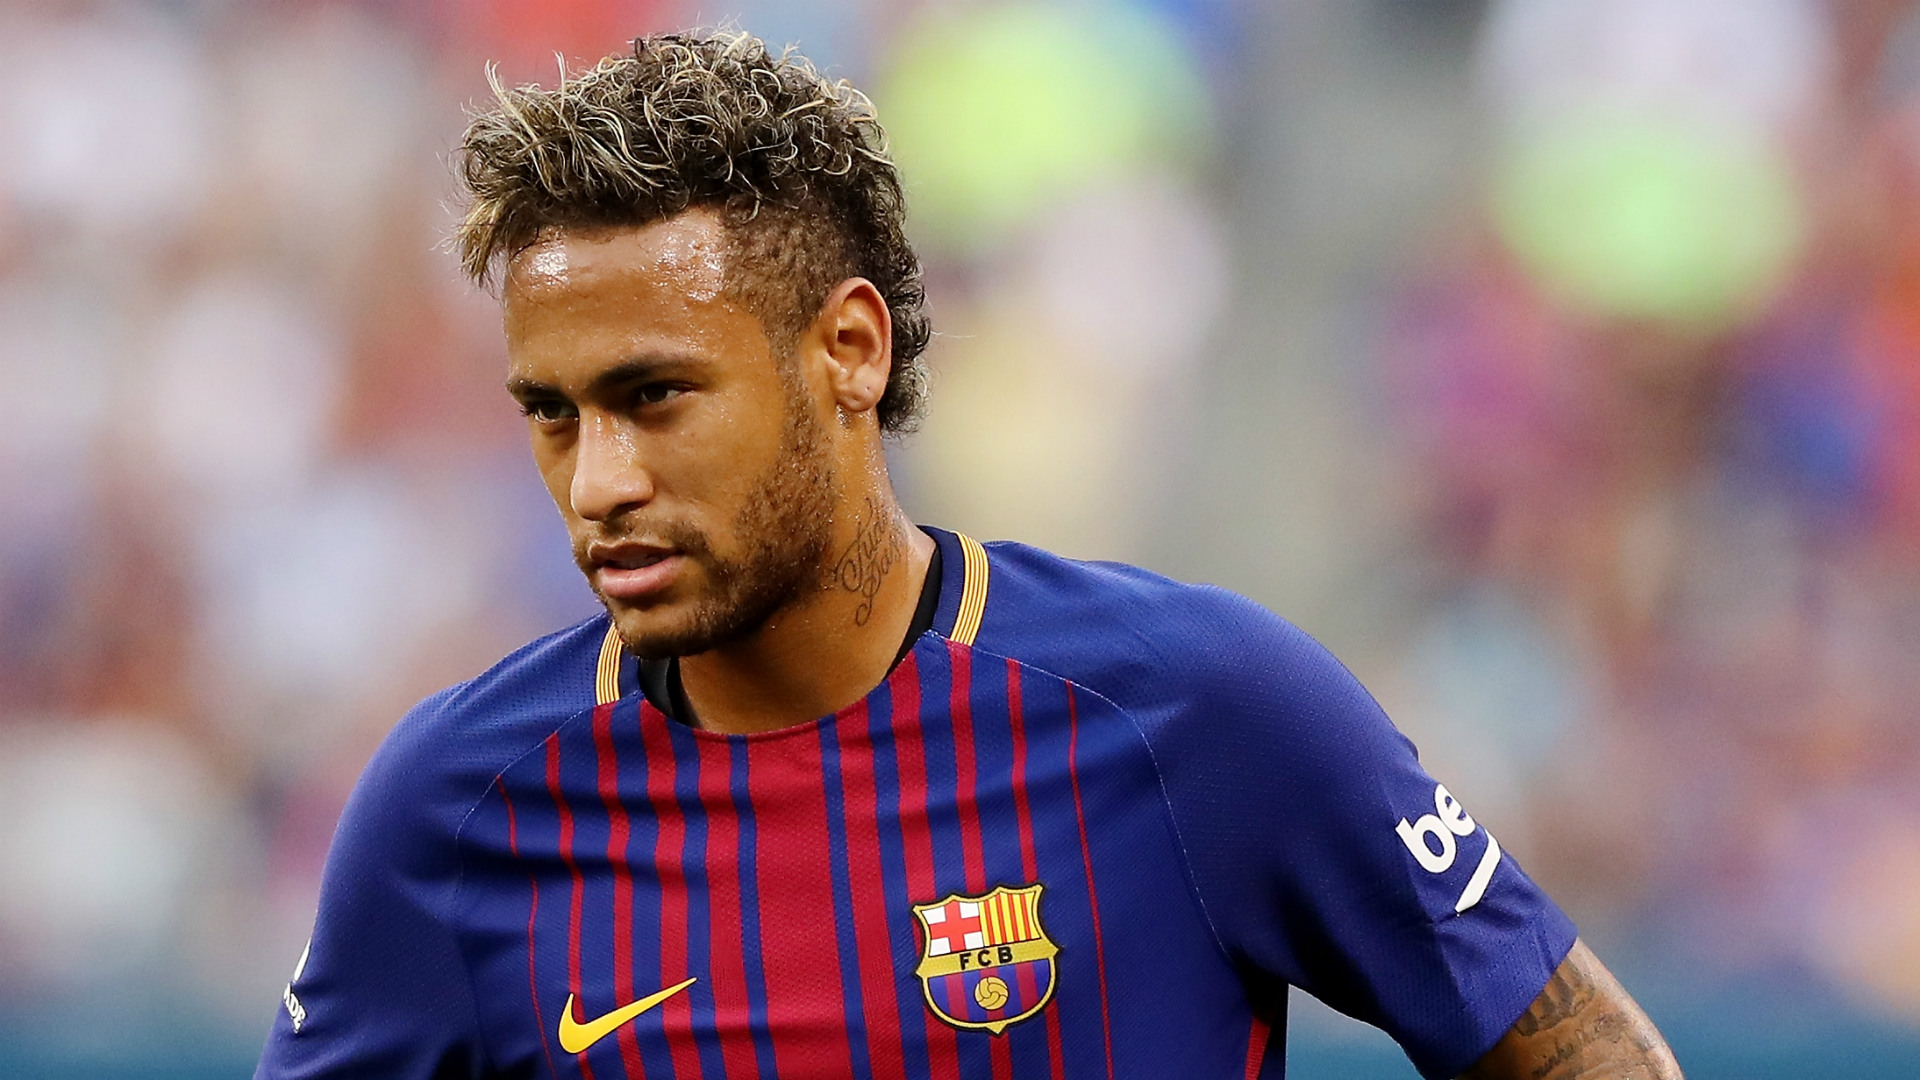 What Neymar's Barcelona teammates are saying about his potential transfer to PSG